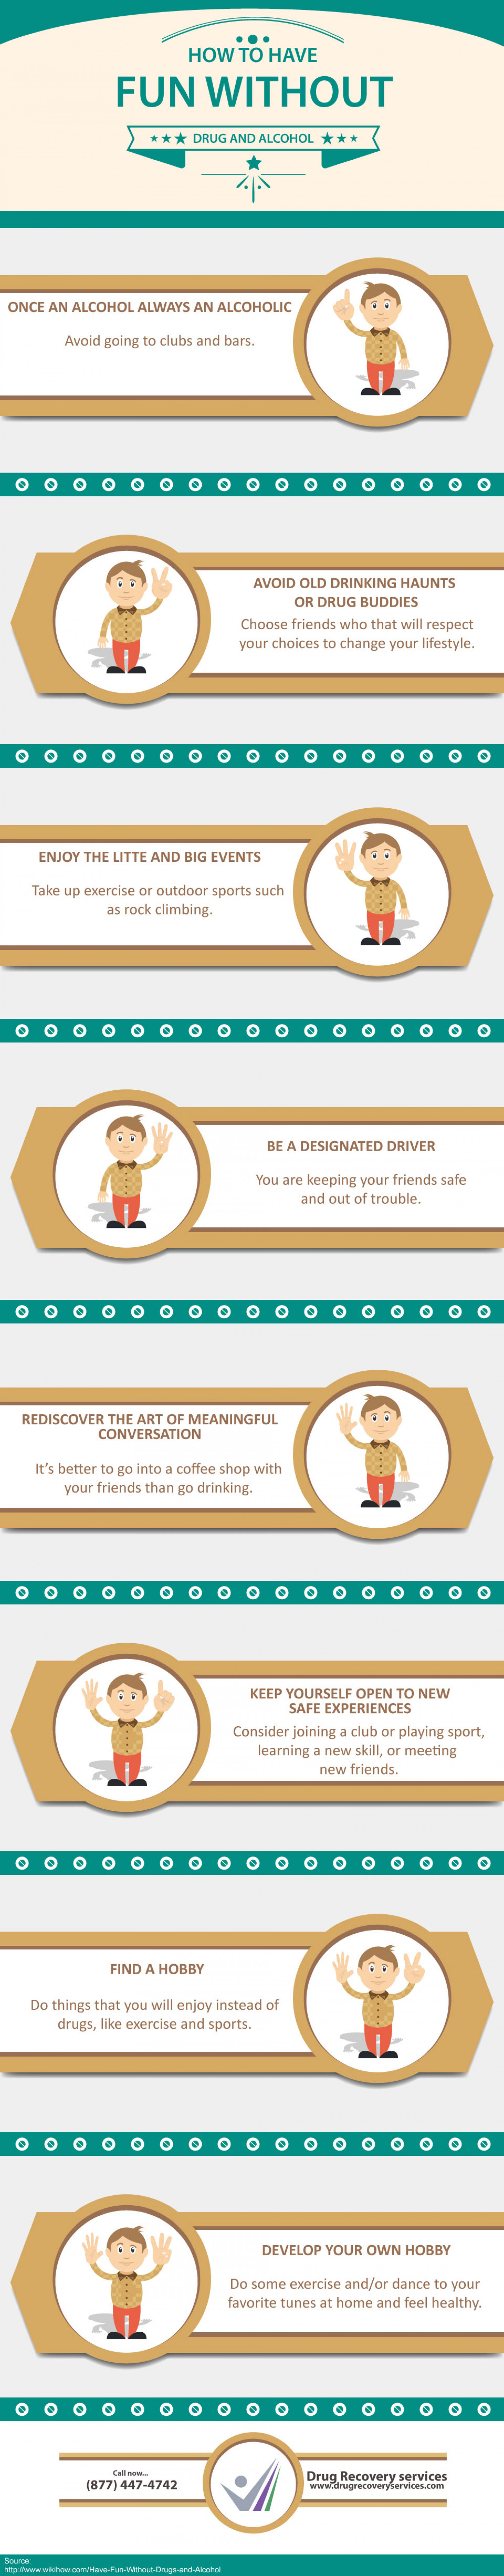 ... Fun without Drugs and Alcohol - Drug Recovery Services Infographic